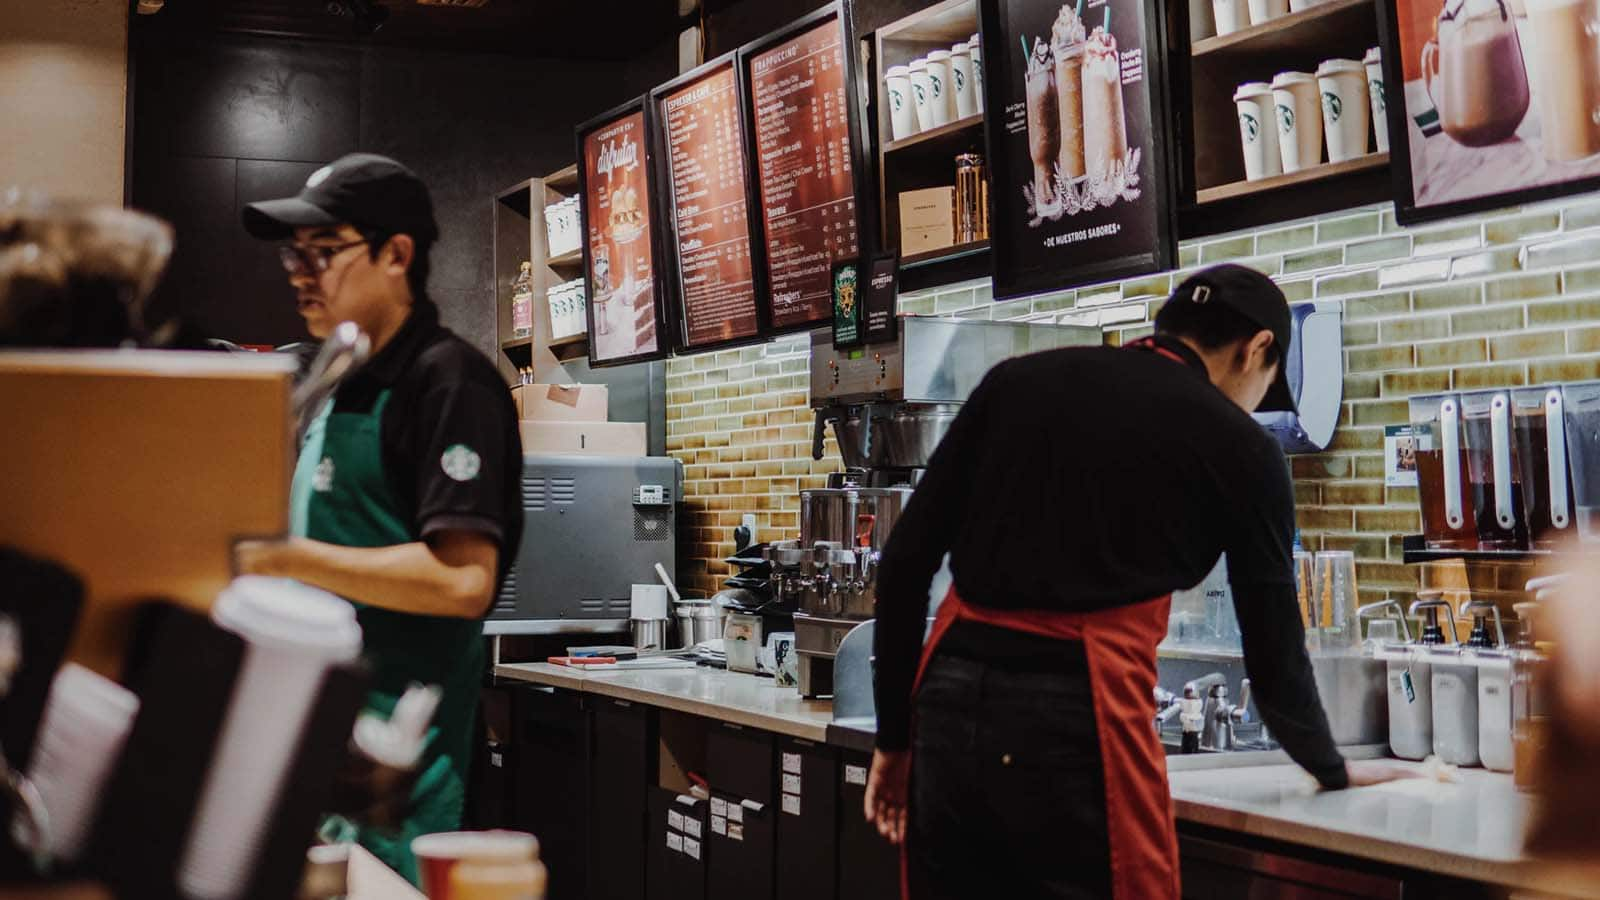 starbucks coffee shop with people working